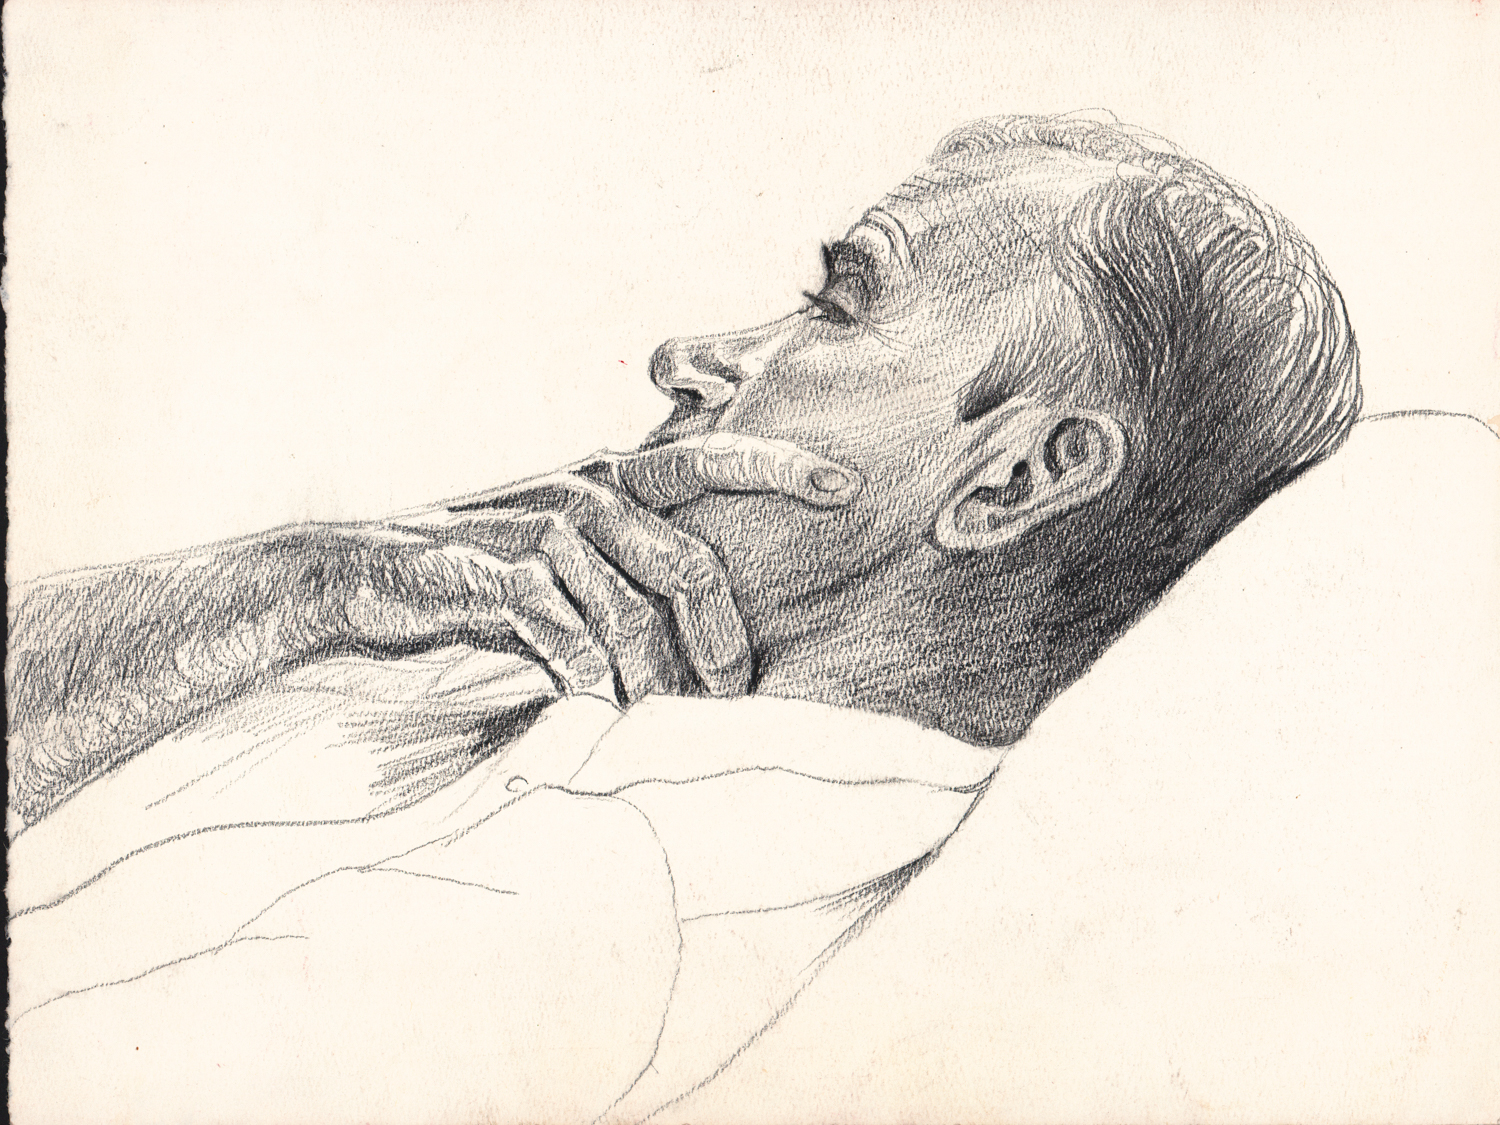 Untitled (Dick Pensive) - Pencil Drawing - 10